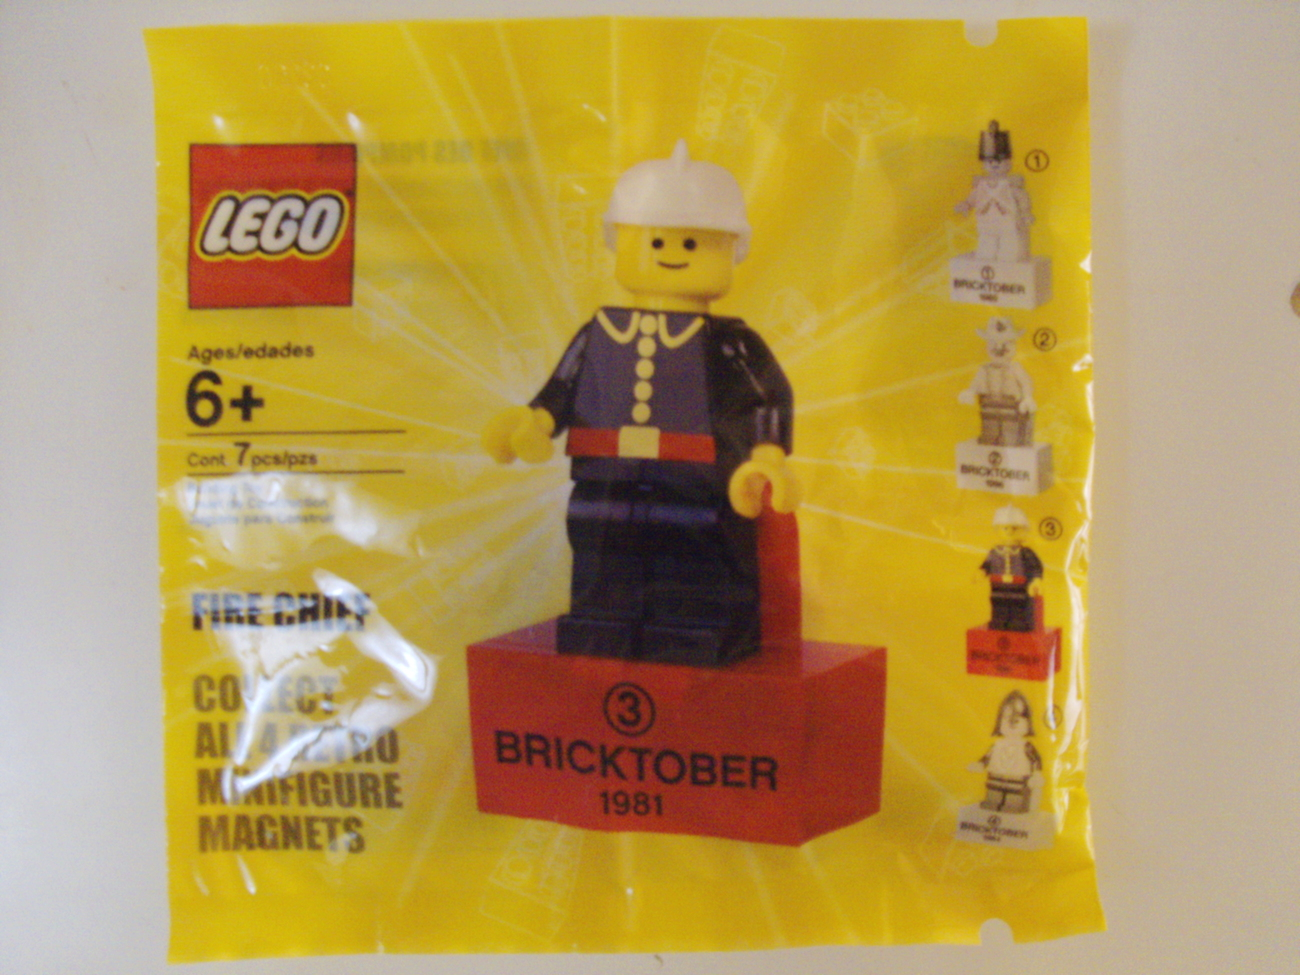 Lego Bricktober Fire Chief #3 of 4 Retro Minifigure Toys R Us Exclusive - New